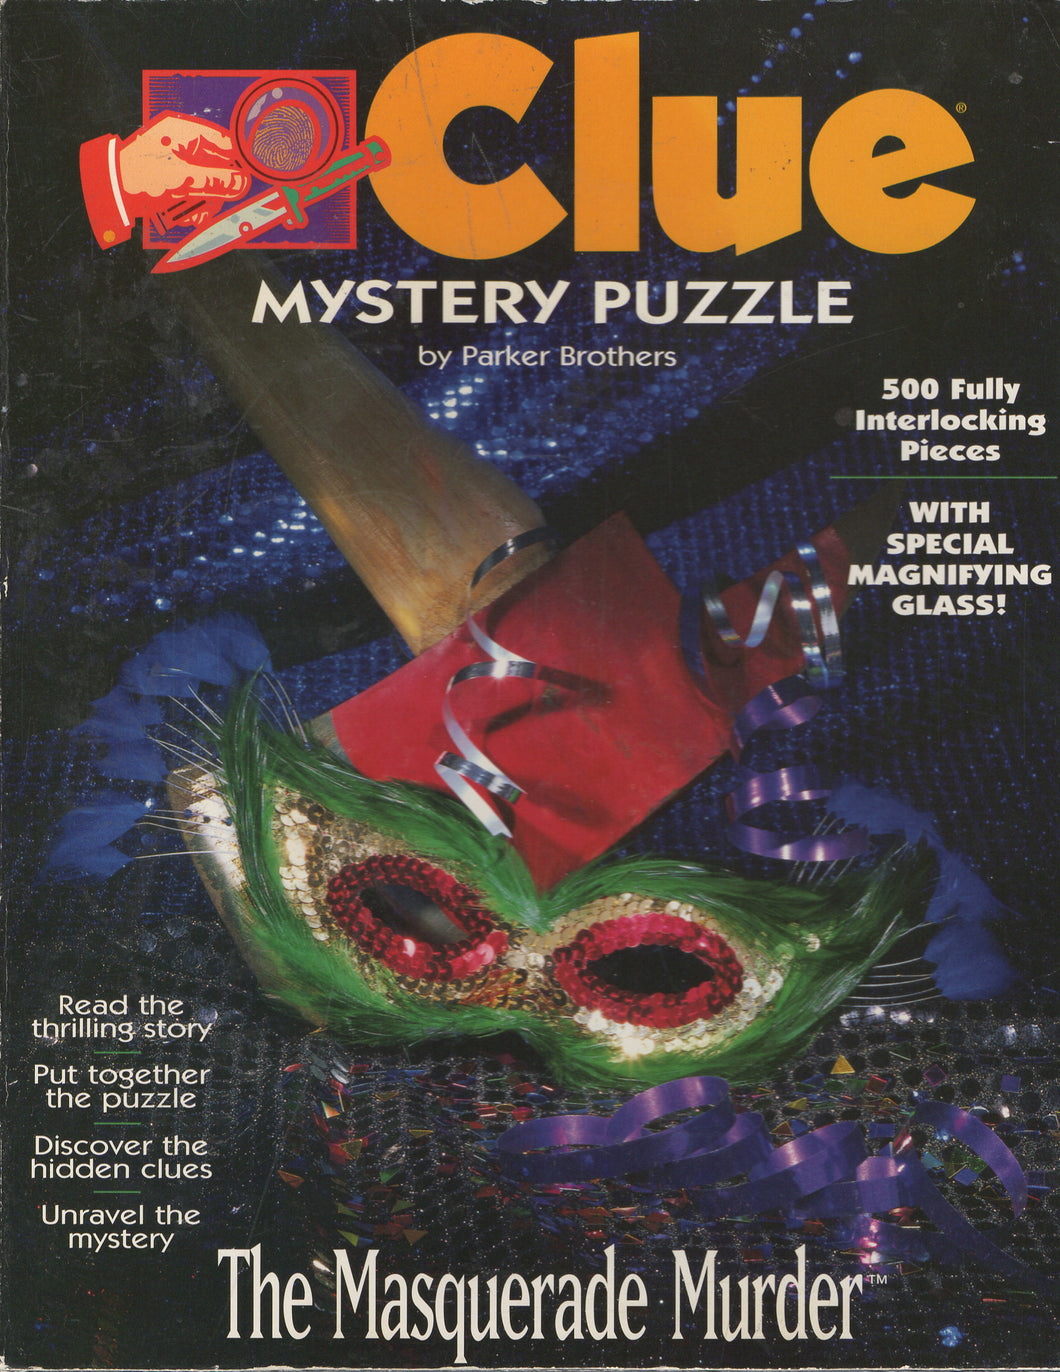 Rental - Clue Mystery Puzzle: The Masquarade Murder - Conundrum House